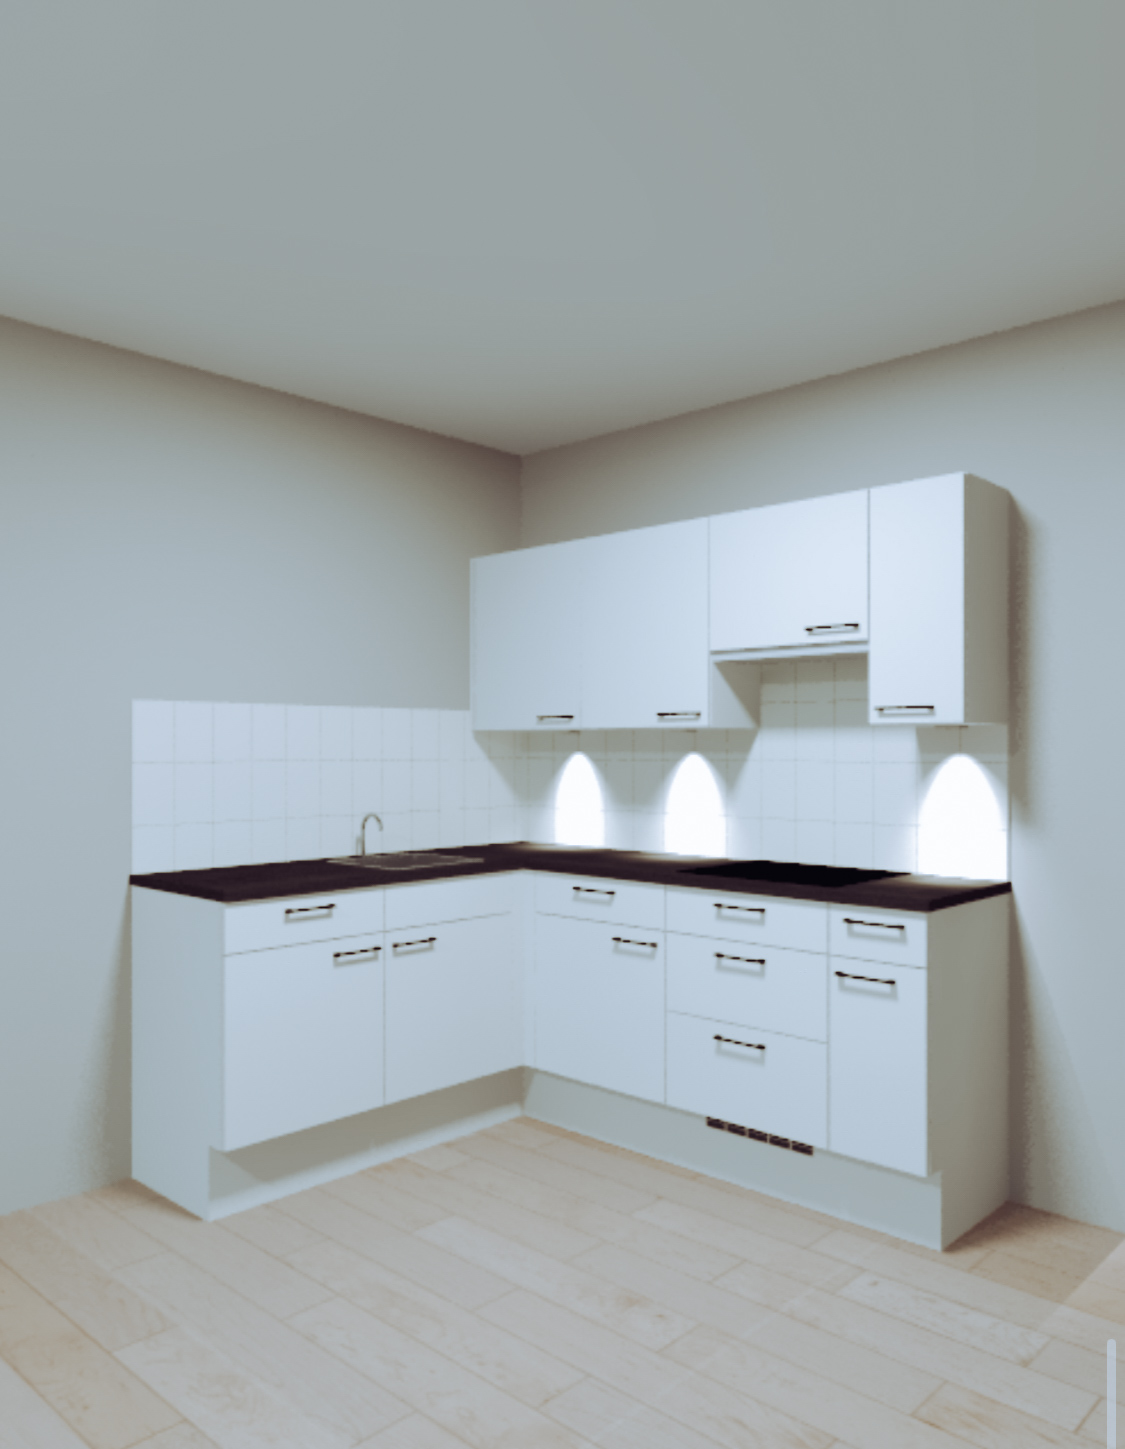 new kitchen design, building a house, apartment